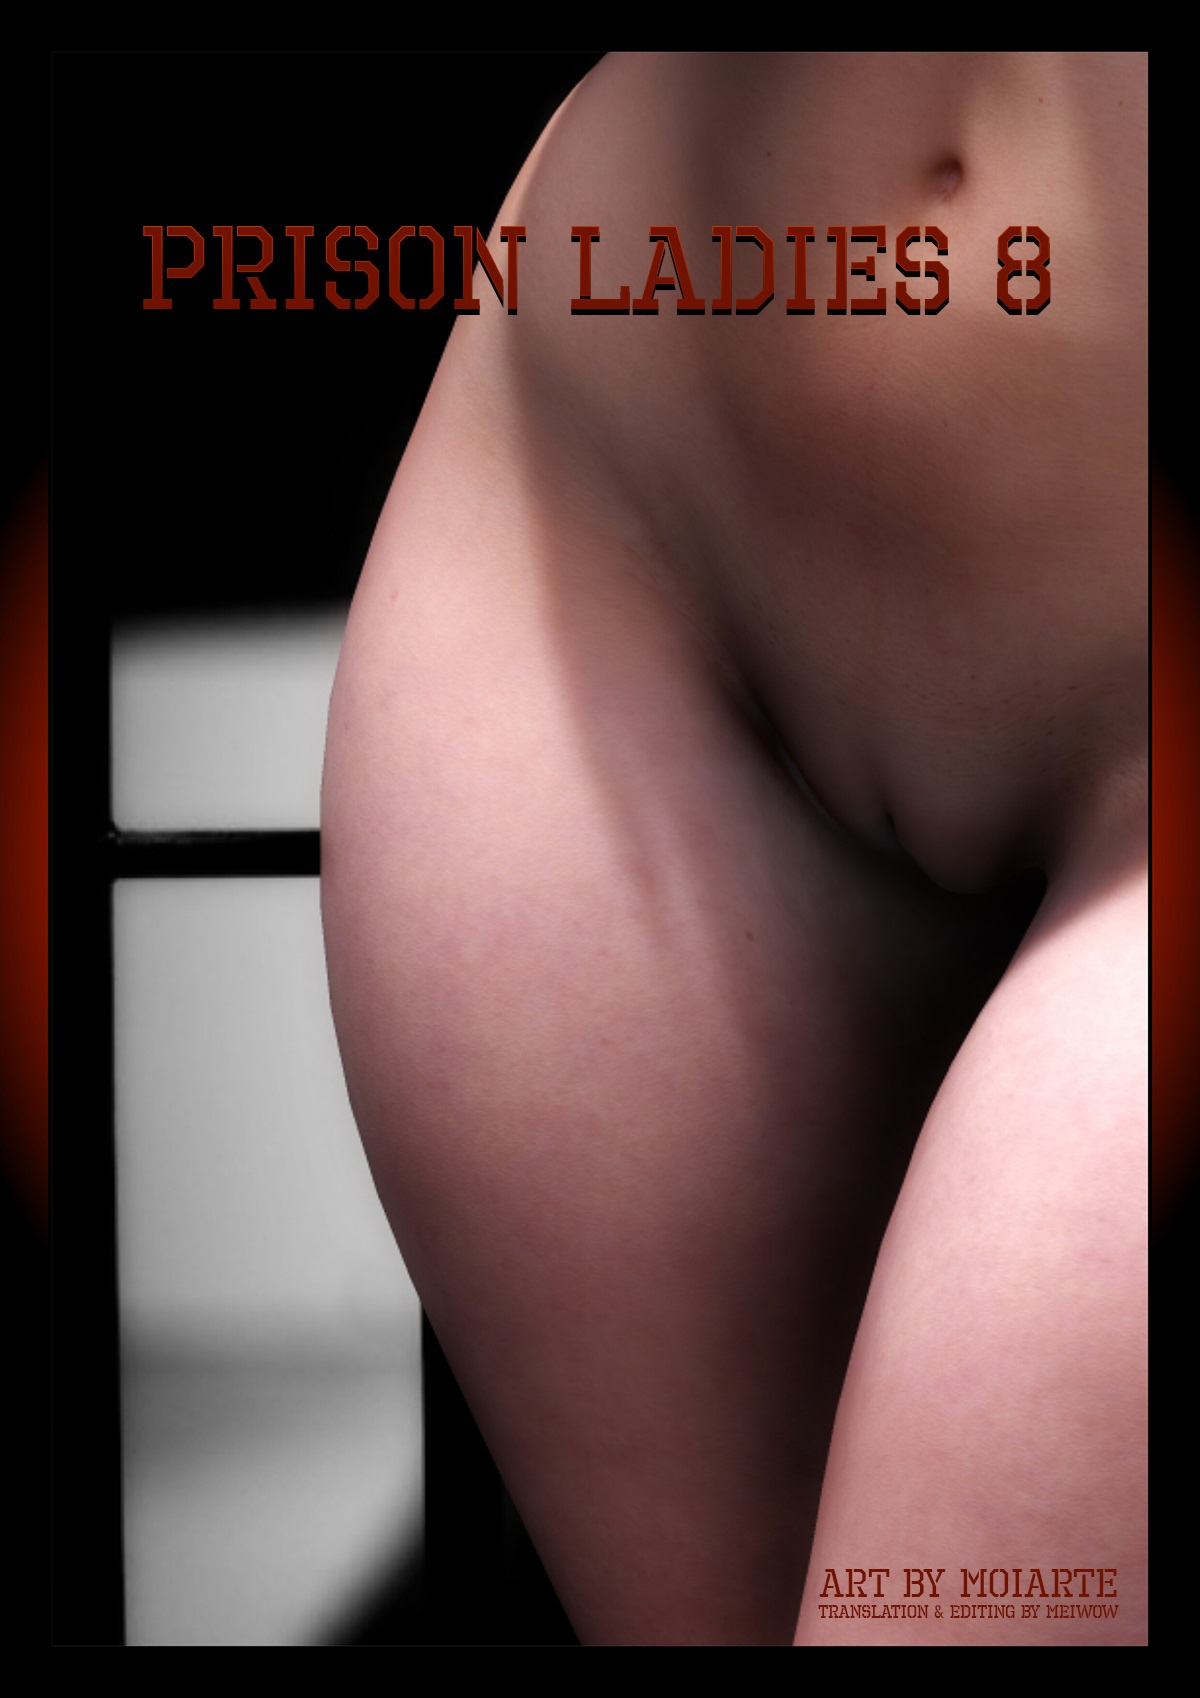 Prison Ladies 8 by Moiarte image 1